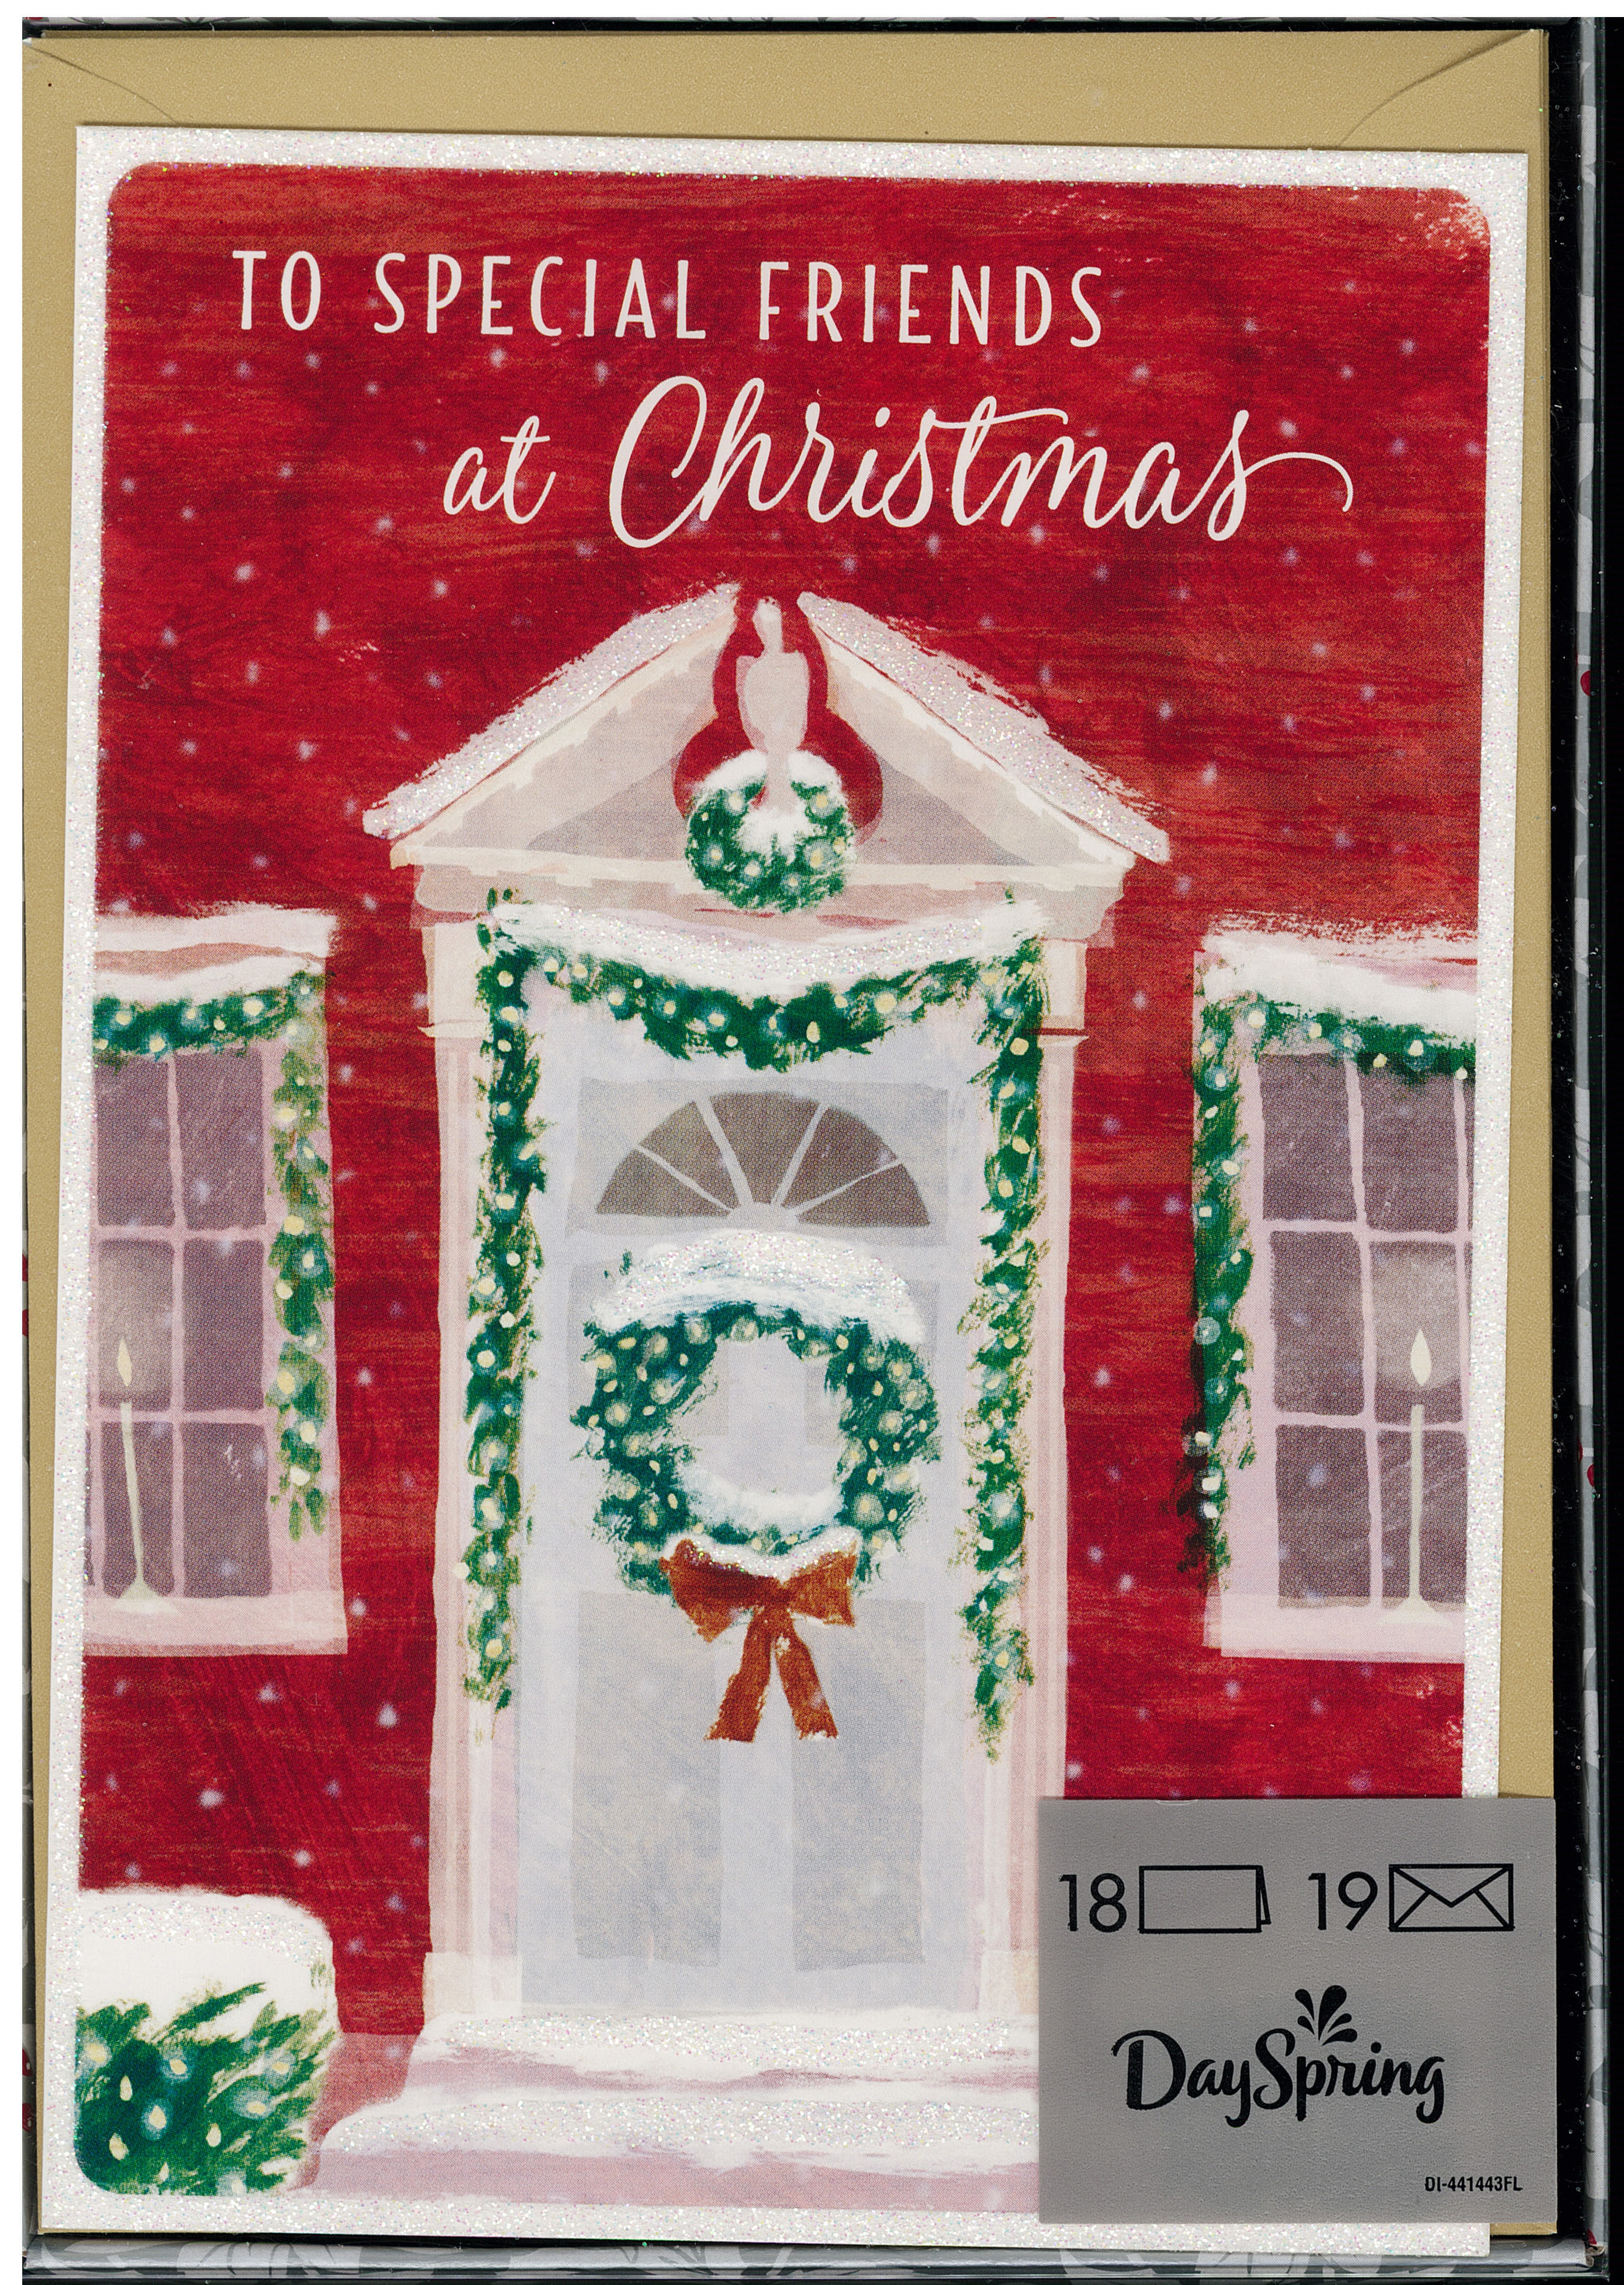 To Special Friends Boxed Christmas Cards 217-J3375 includes 18 cards and envelopes